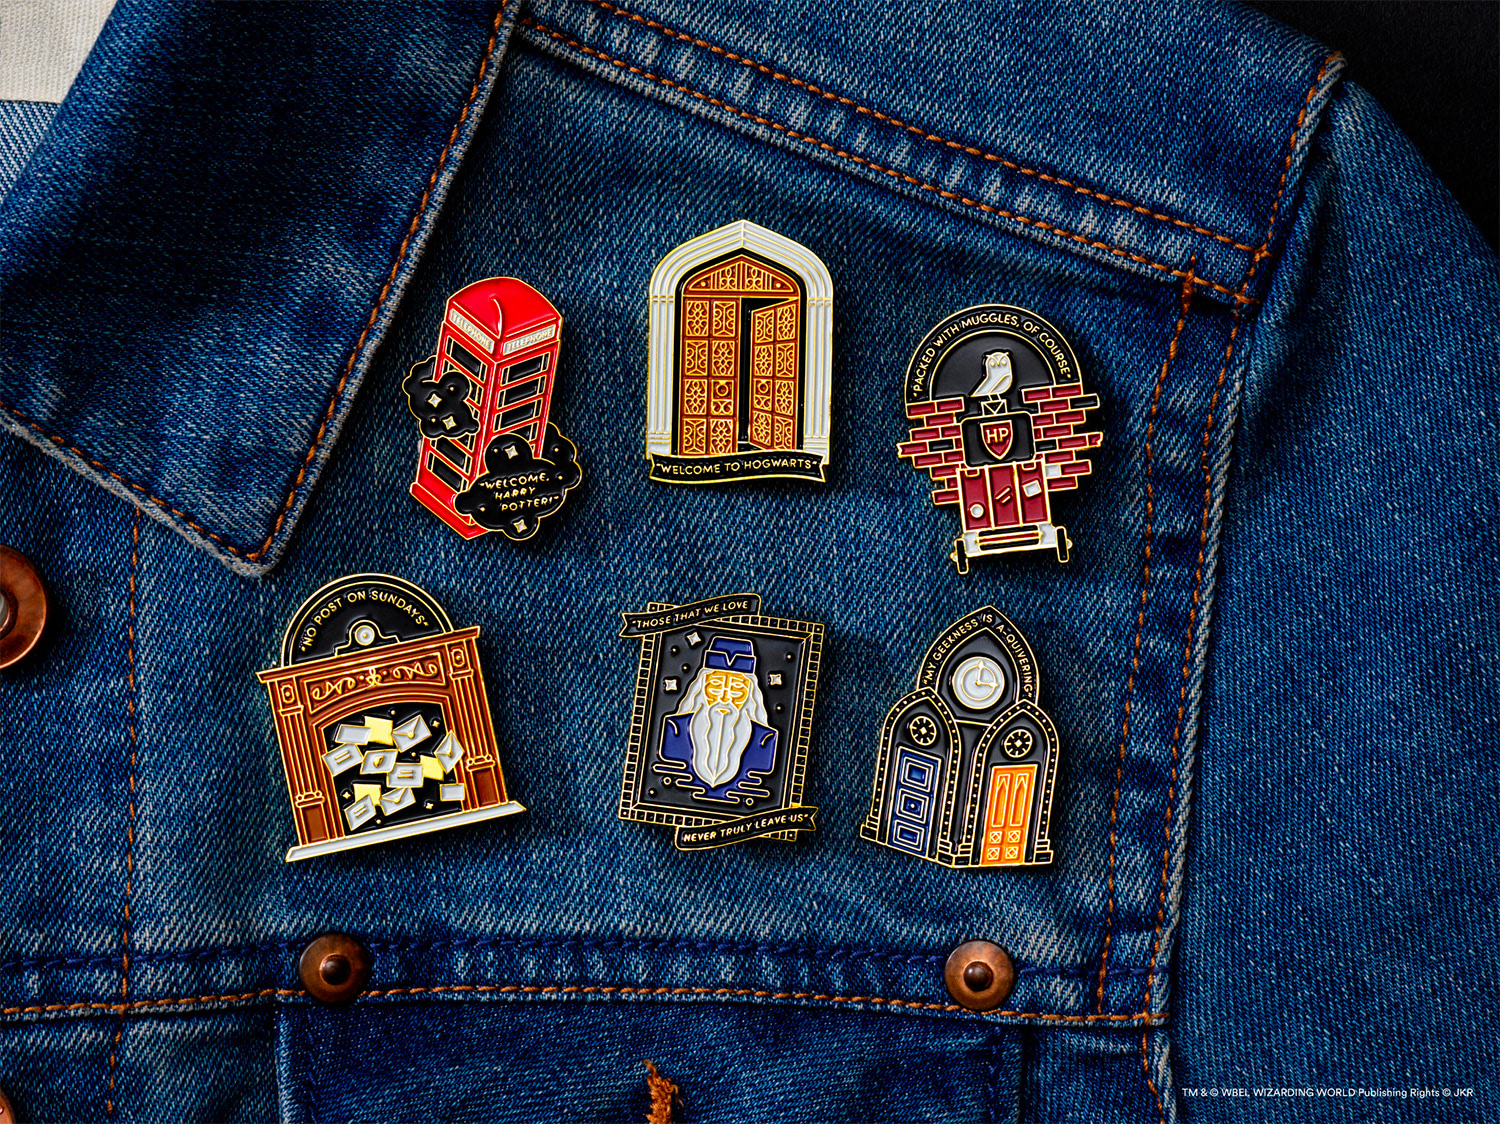 Wizarding World Gold pins